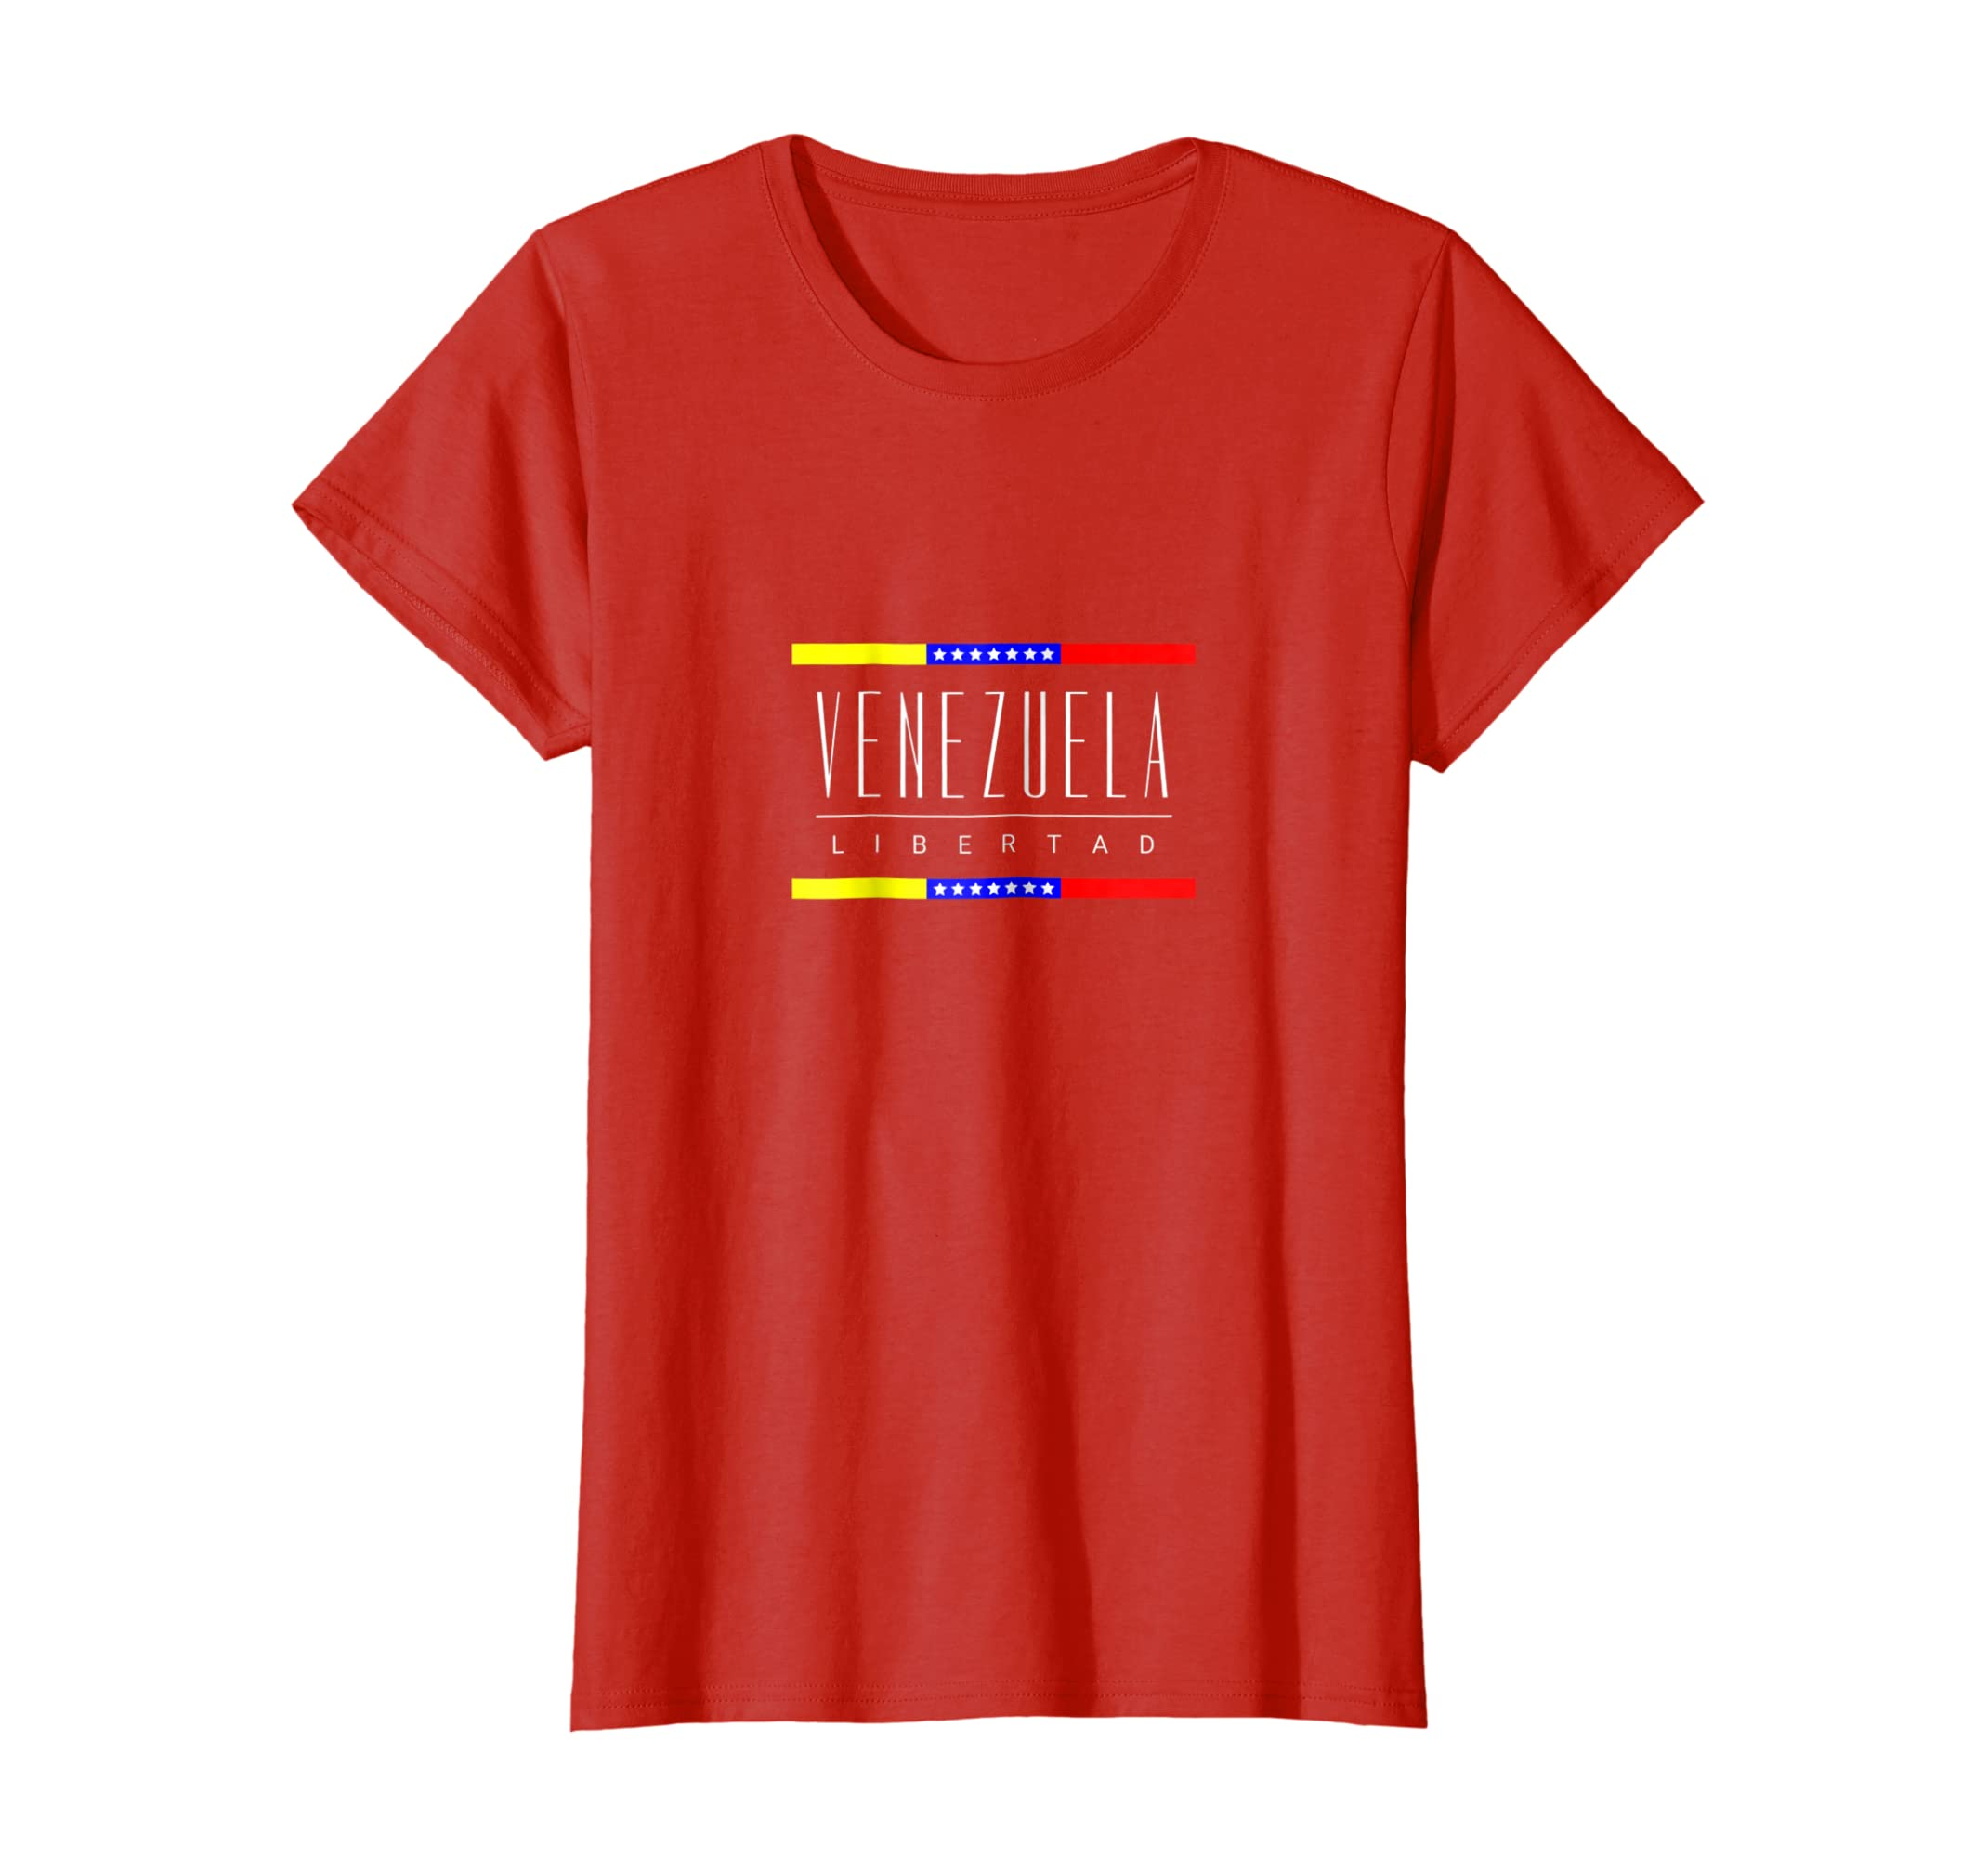 Amazon.com: Venezuela Shirt Libertad Tee Tricolor Star flag ...